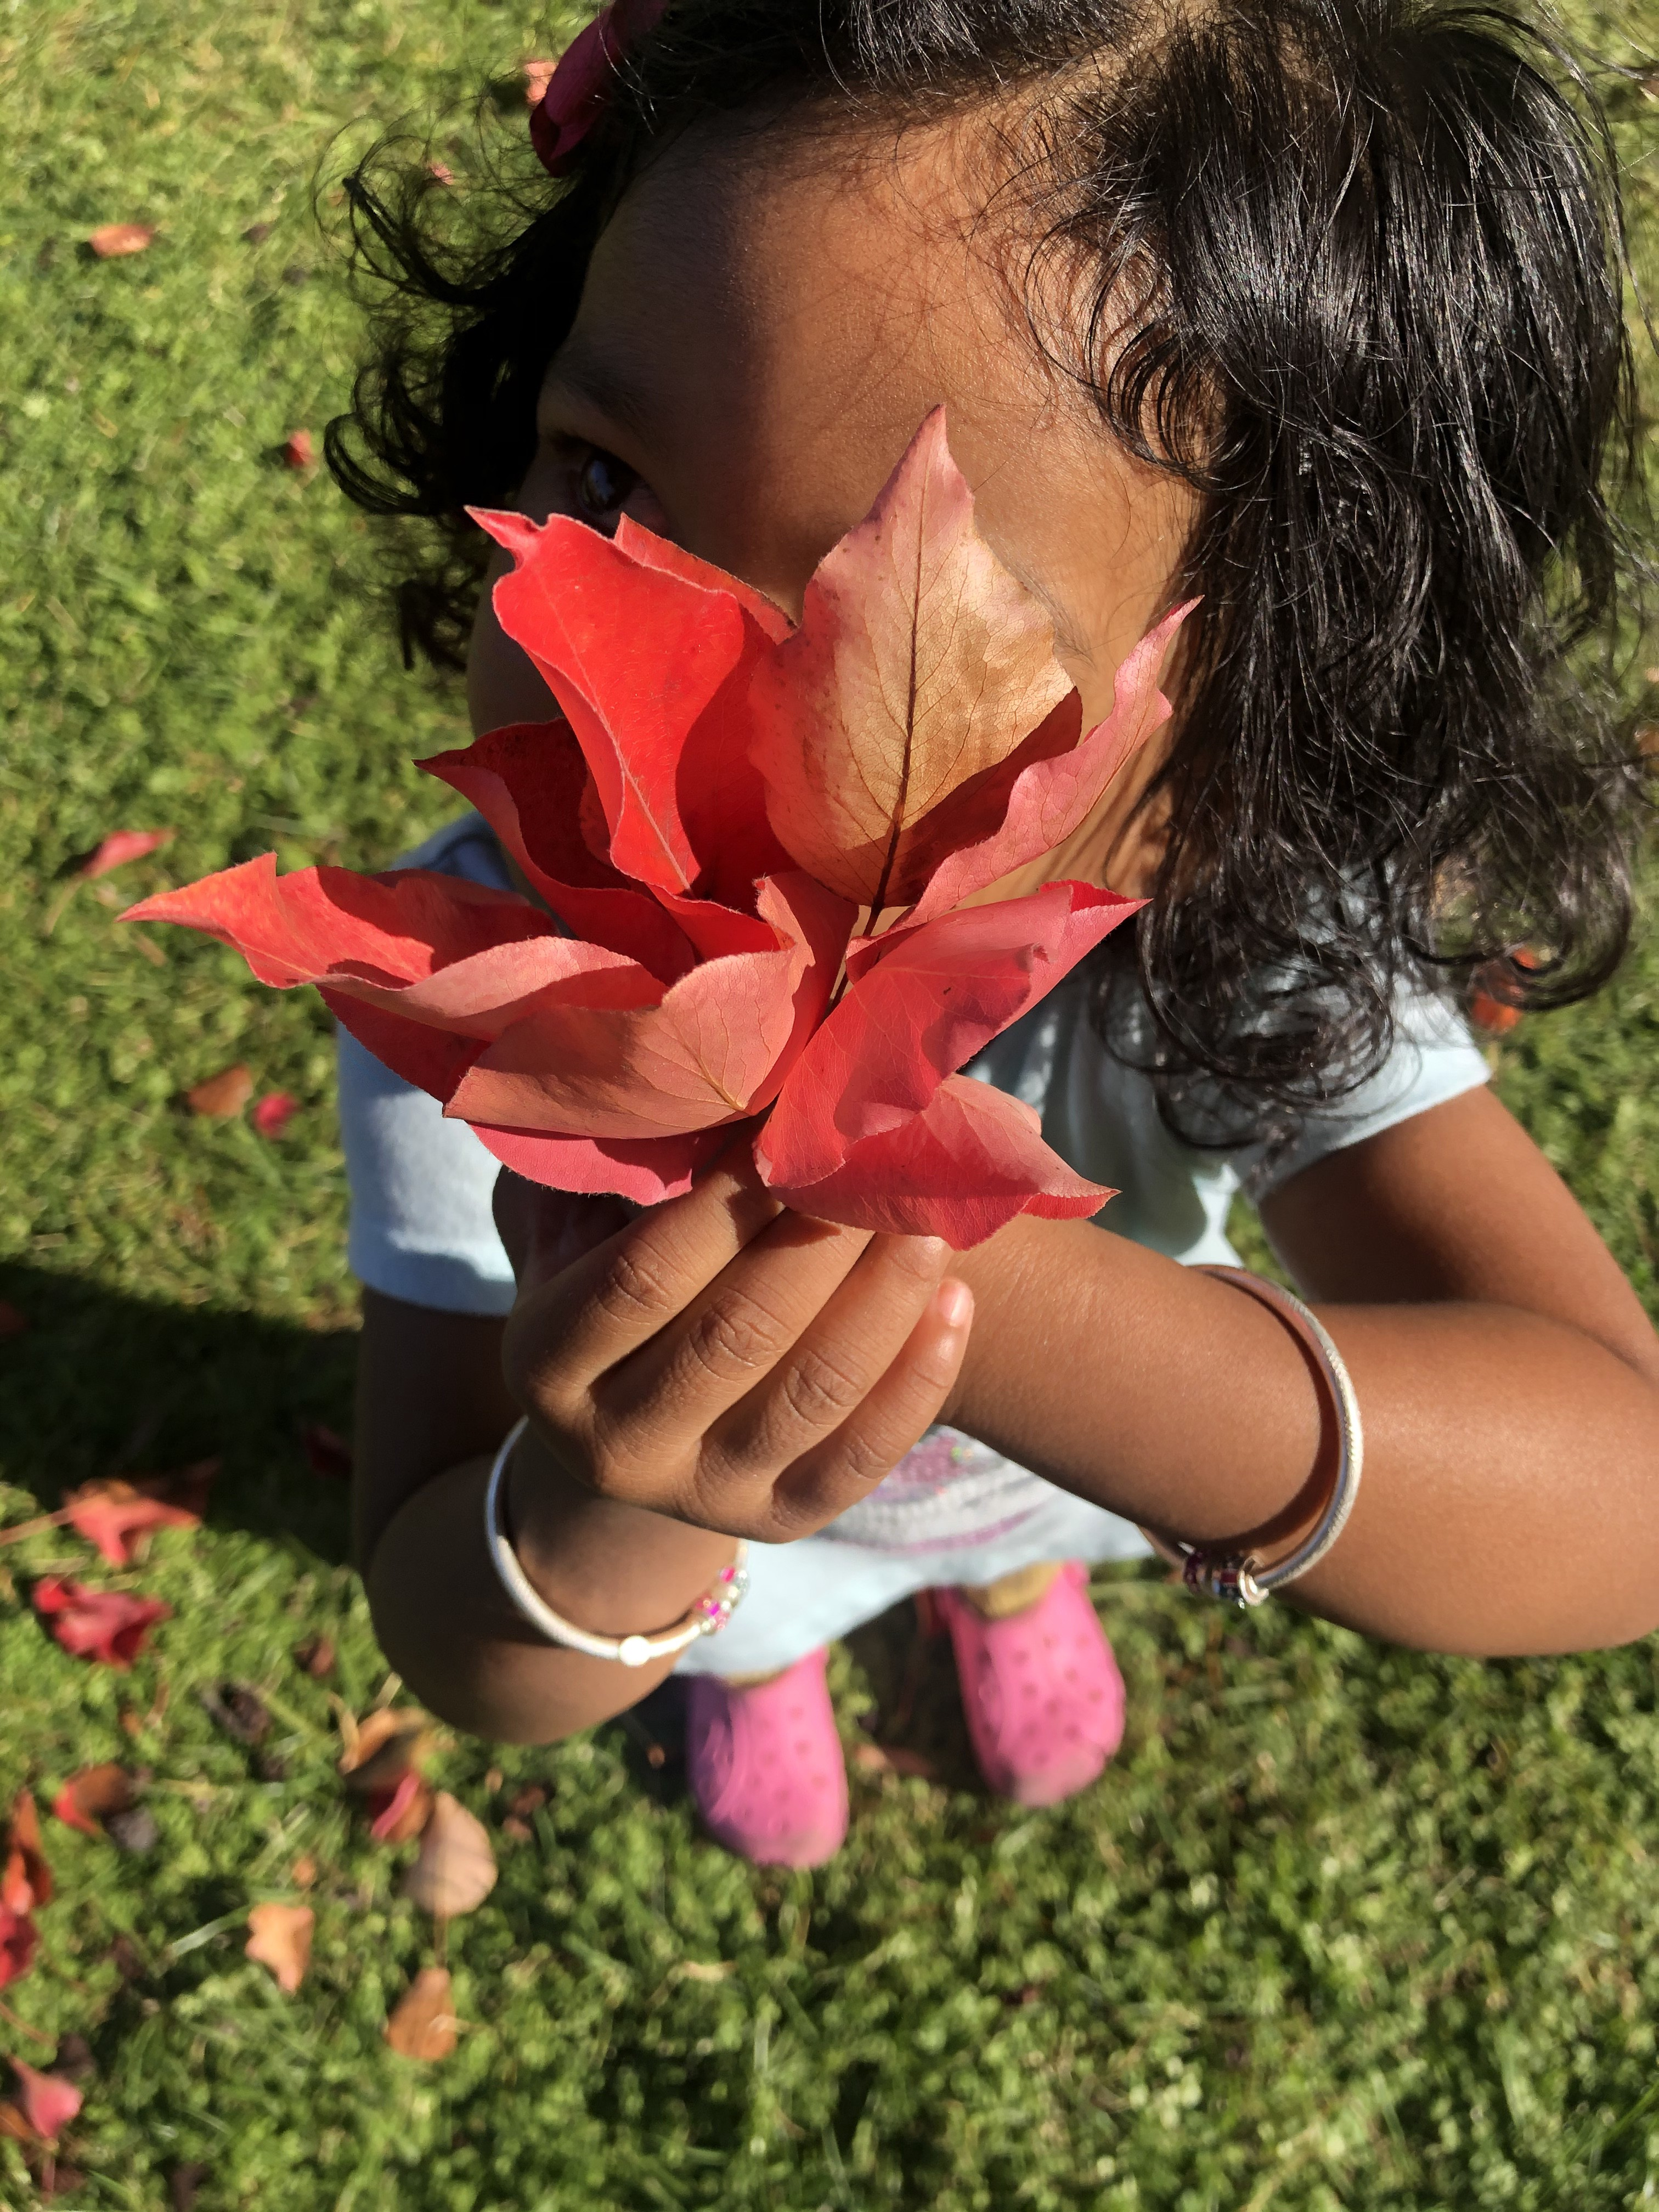 My toddler with the Fall flowers. Pic credit: Anushka Bhartiya